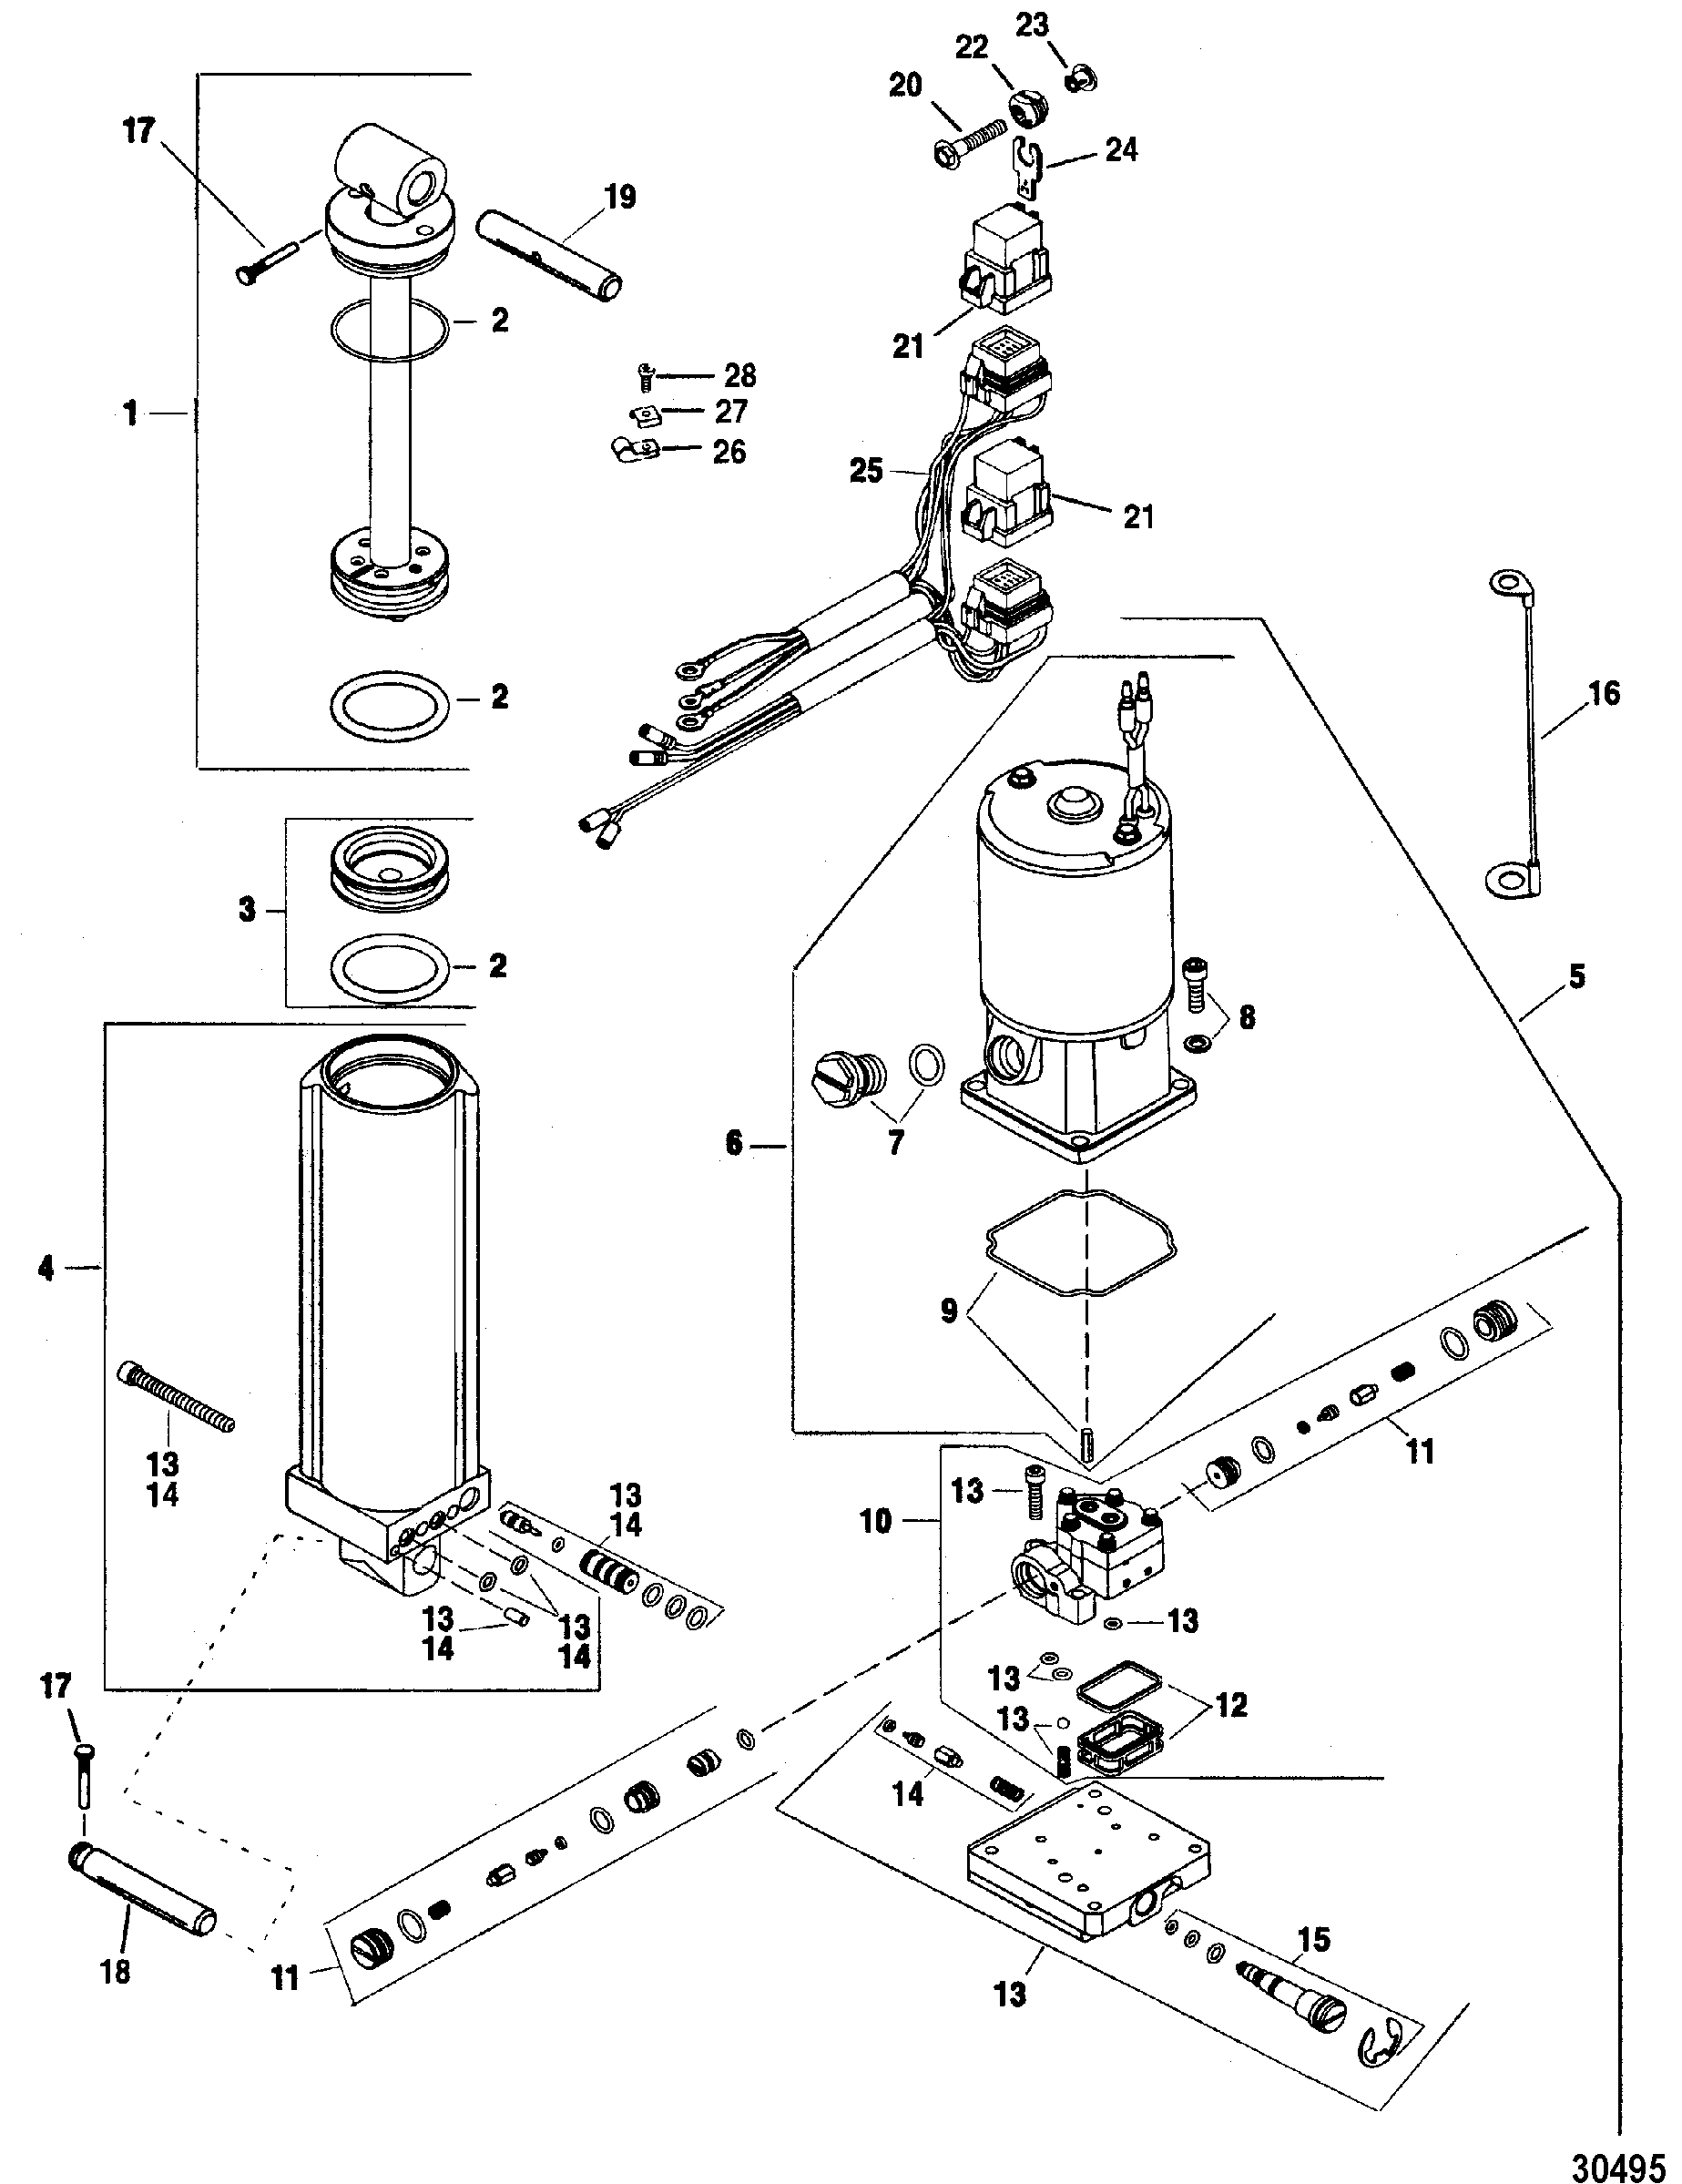 Cable 85 Force Outboard Diagram Trusted Wiring Diagrams Common Motor Trim And Tilt System Pump Data U2022